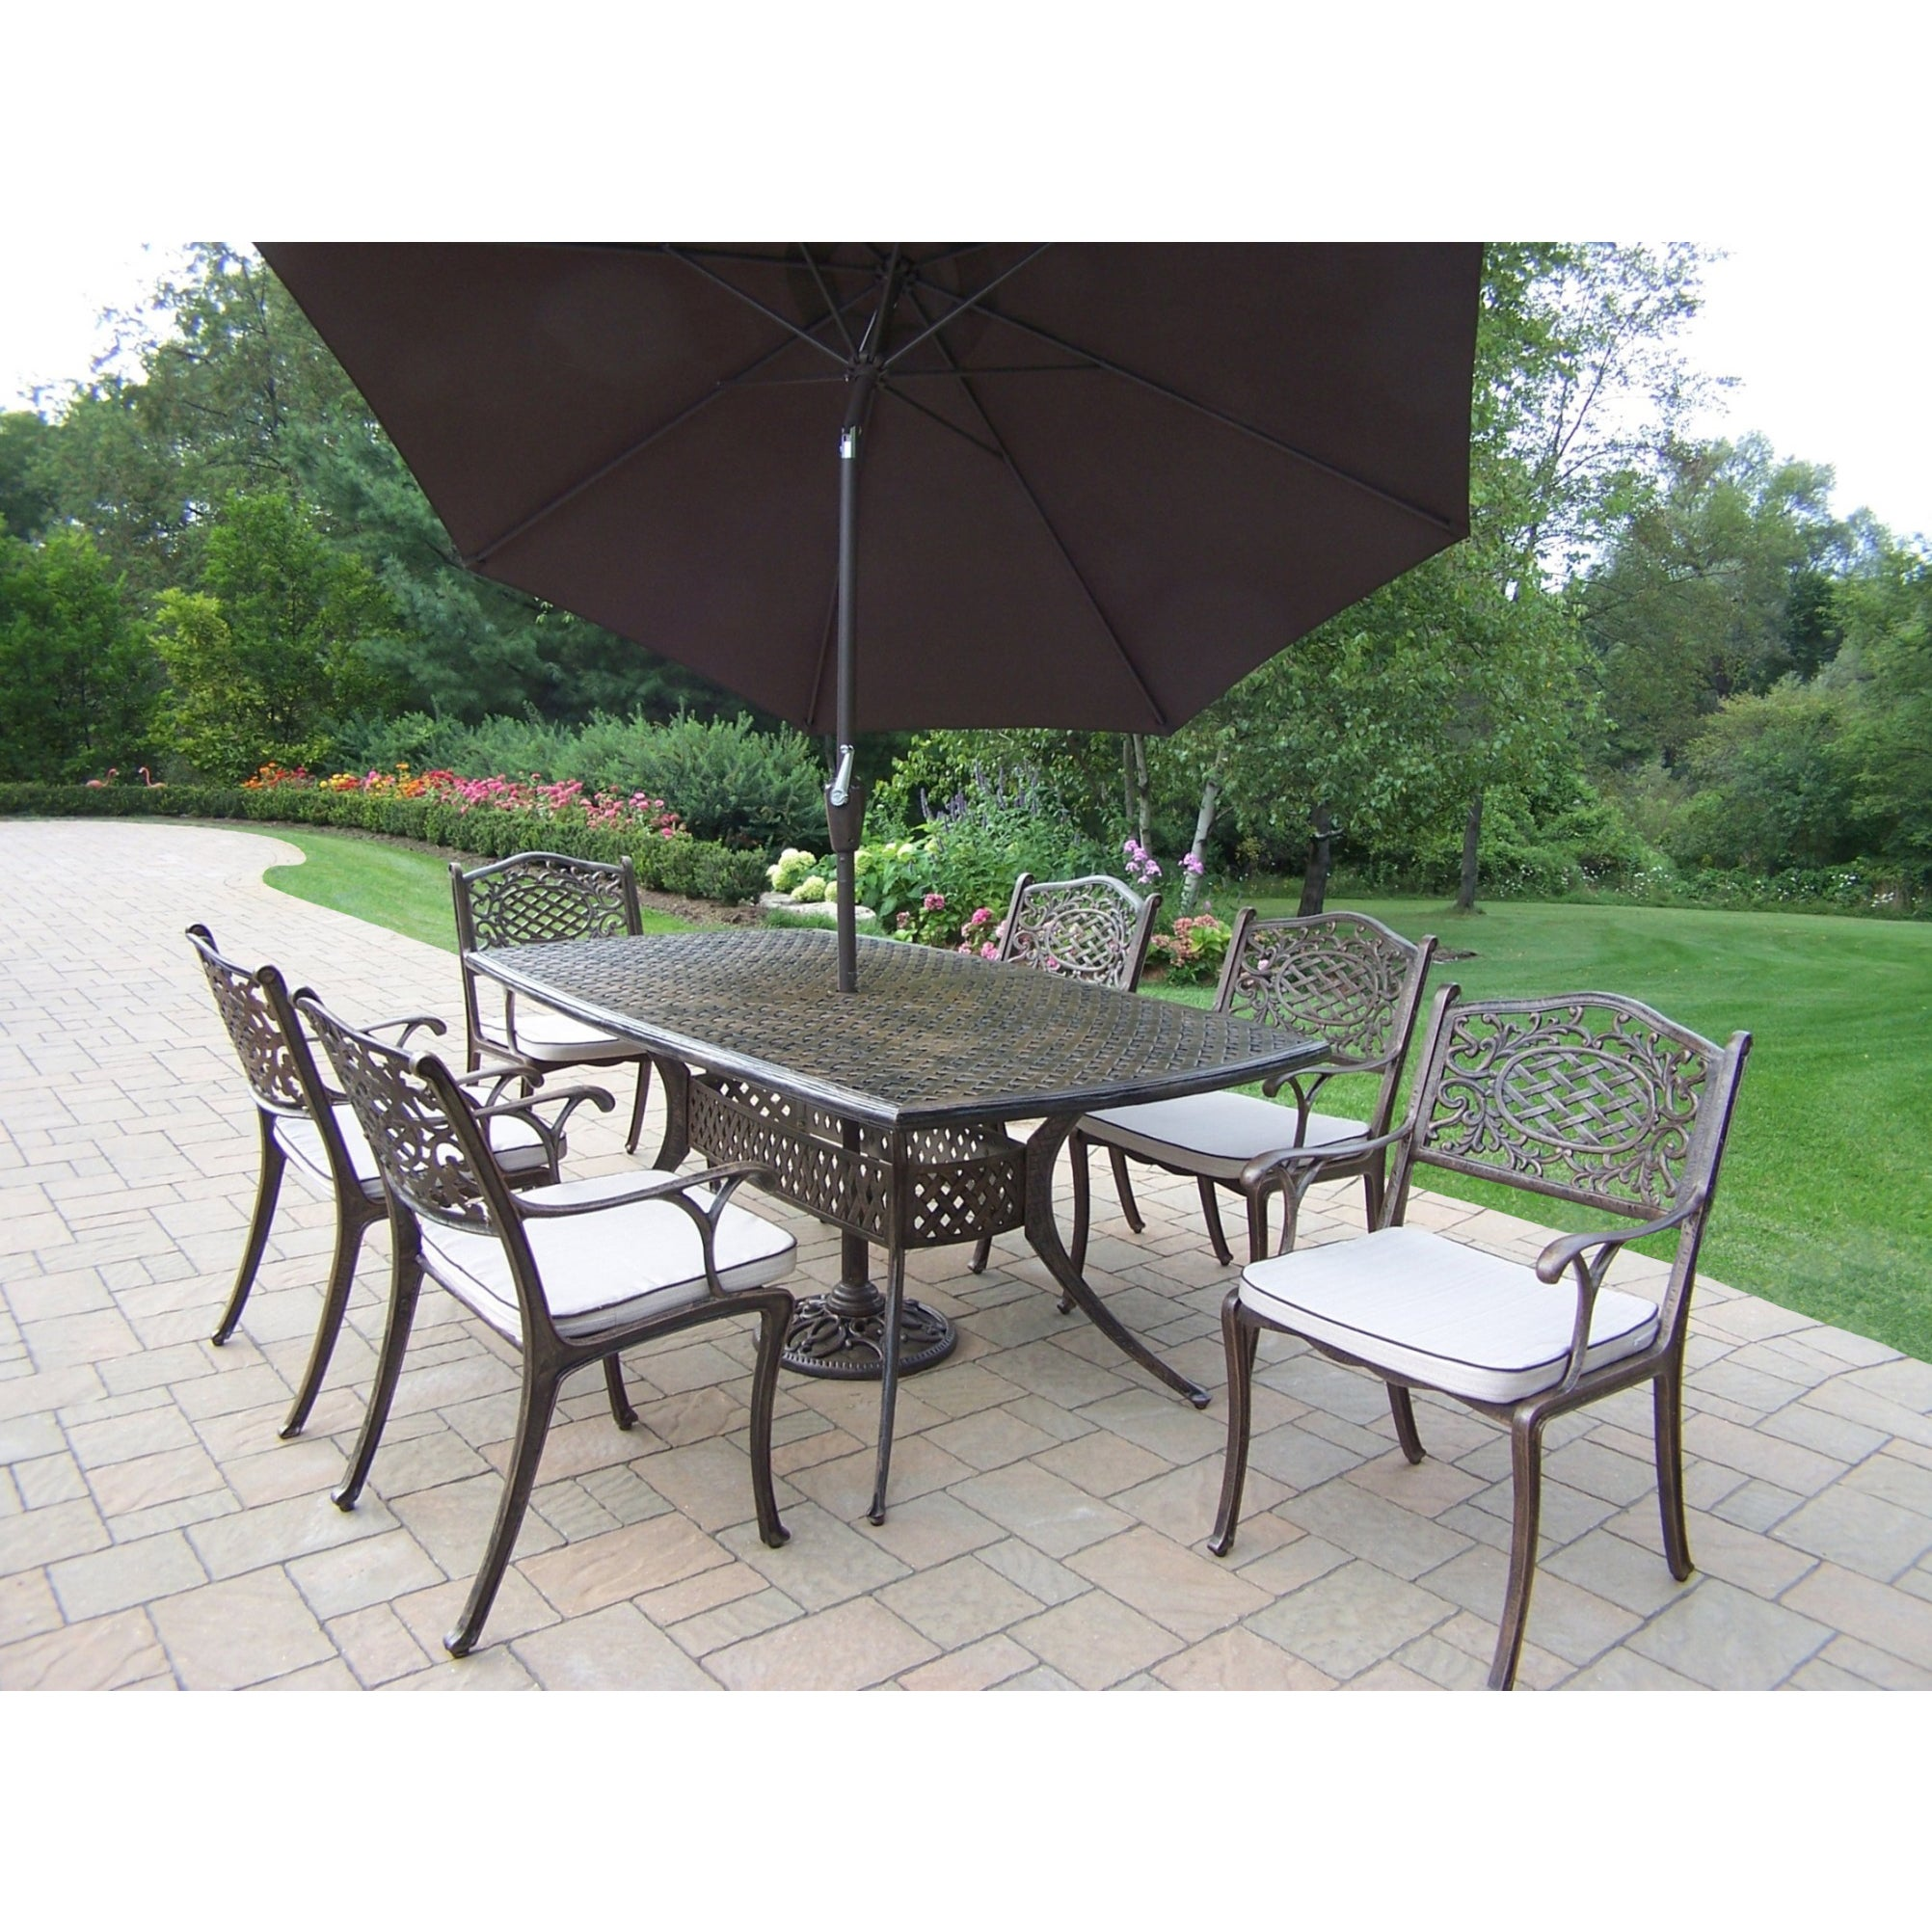 Outdoor dining set with boat table 6 chairs umbrella and stand